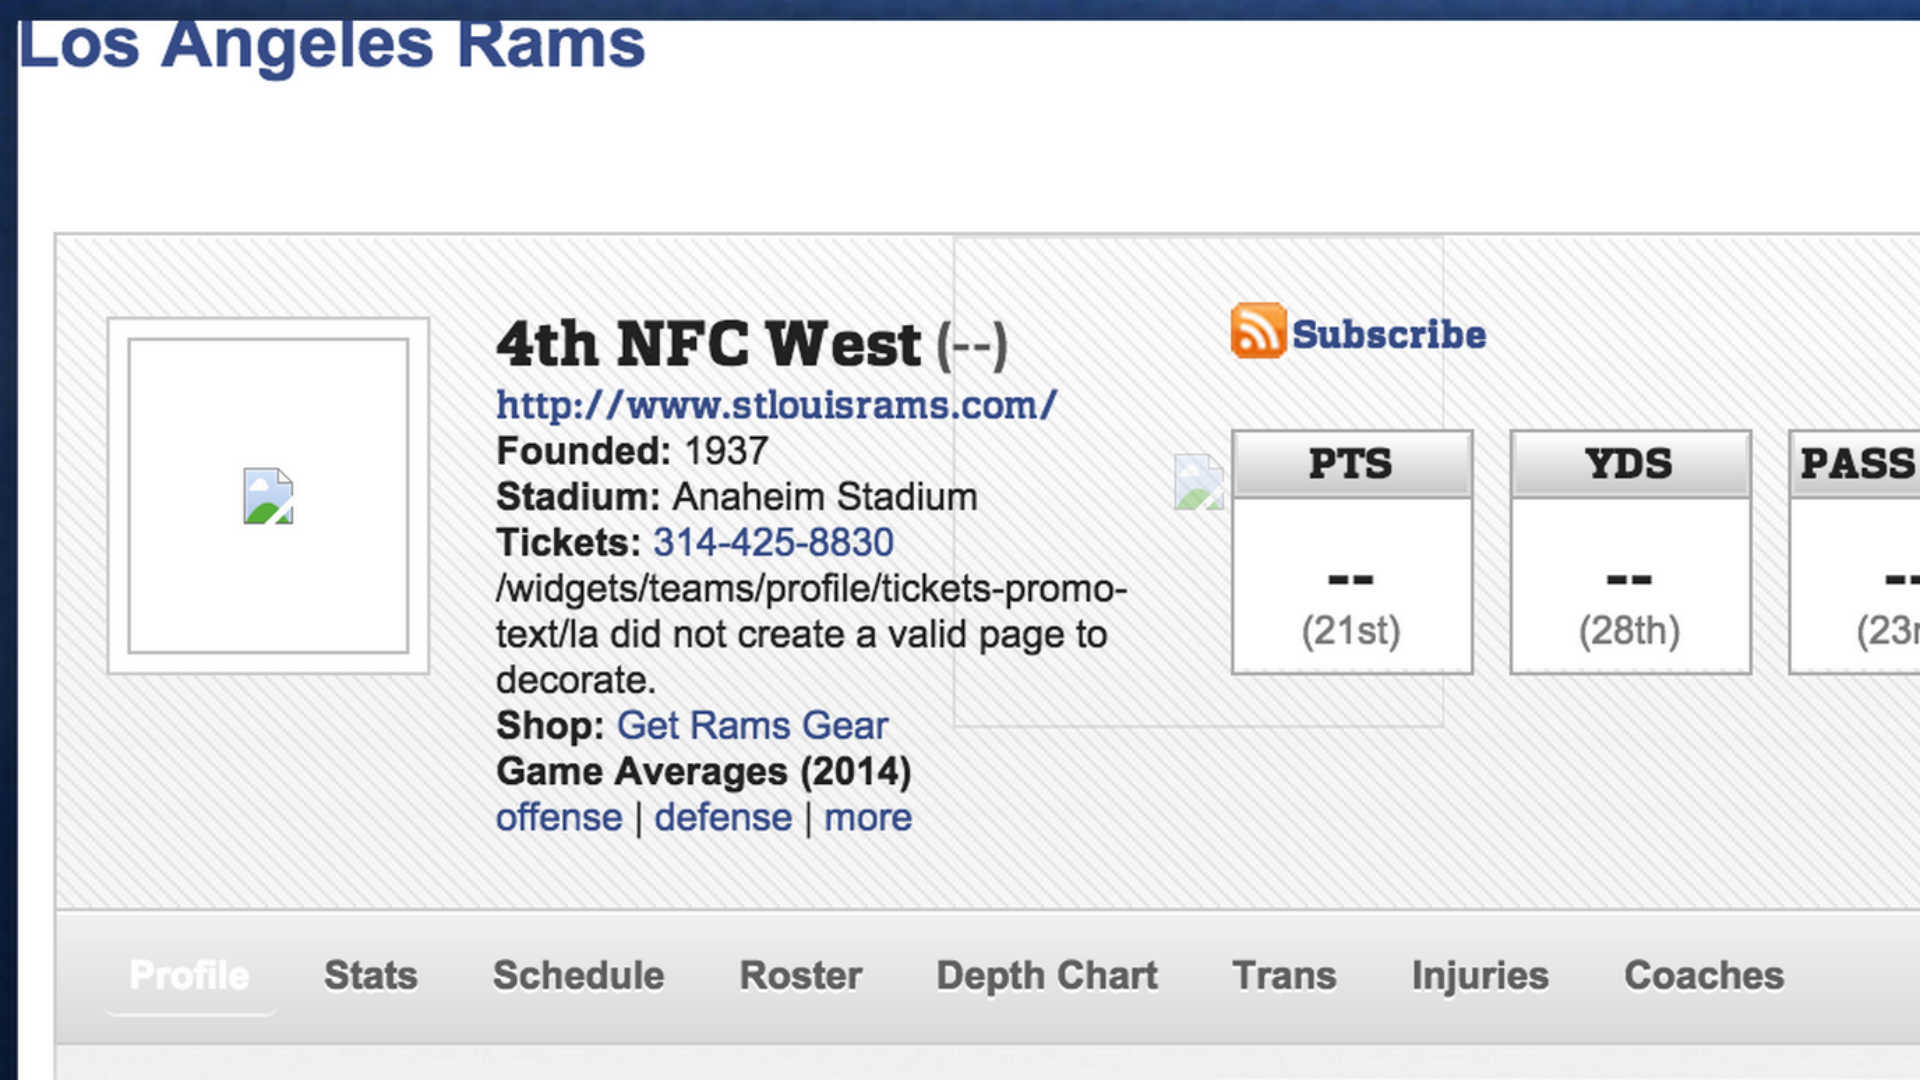 NFL's official website has interesting 'Los Angeles Rams' page